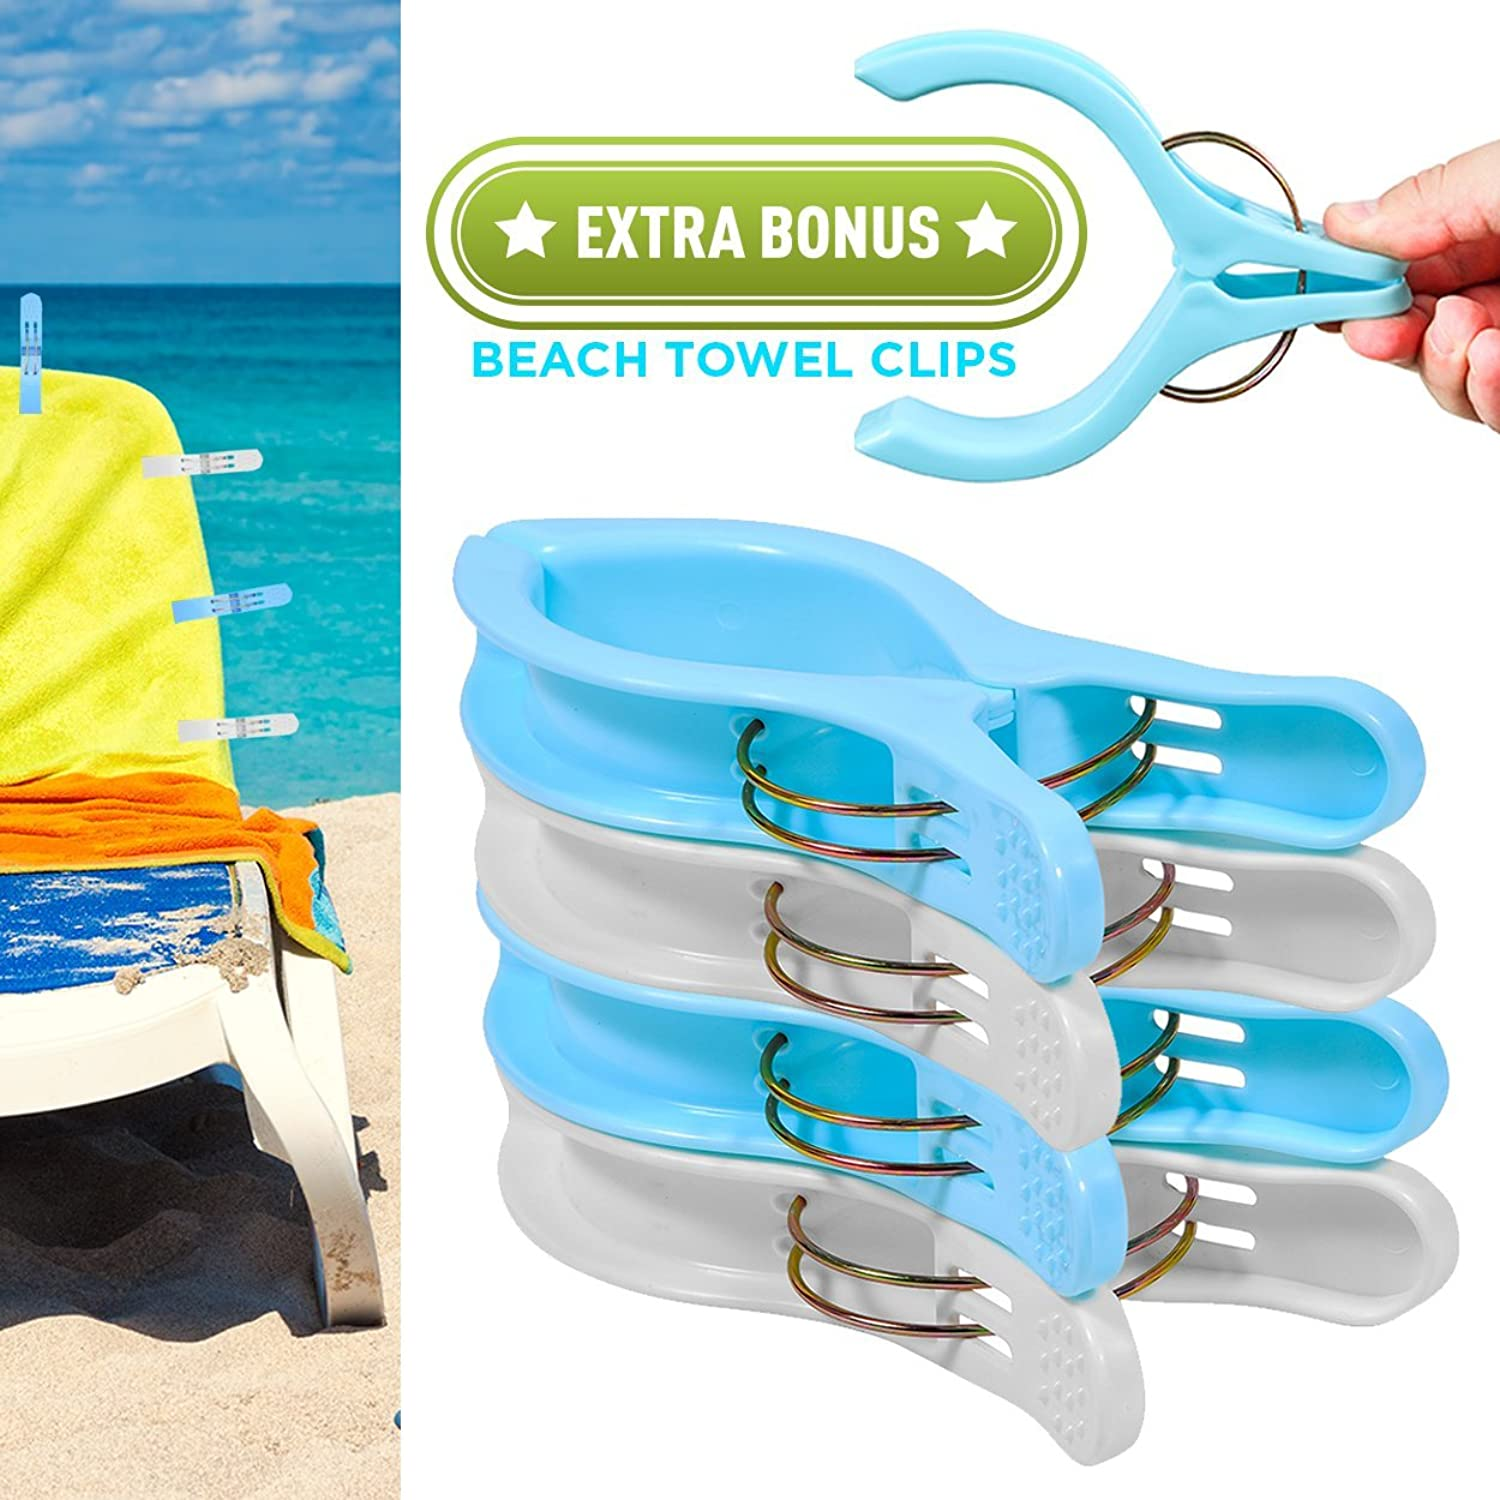 Bulk Beach Towel Clips: Cruise Luggage Tags Traveling Durable PVC E-Tag Holders